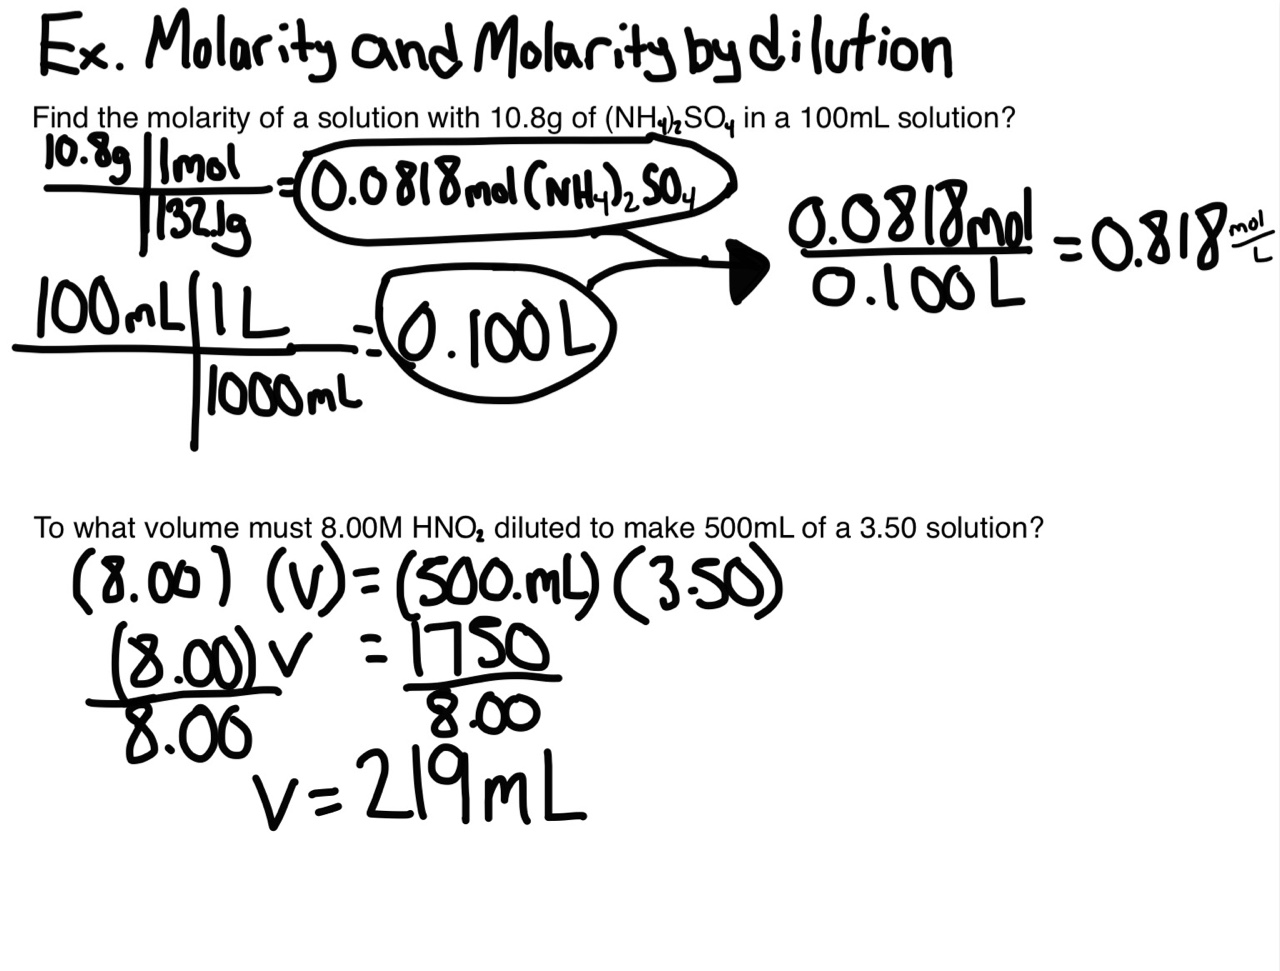 Single Stoichiometry Uses Mole Ratios Which Are The Coefficients In A  Chemical Equation The Coefficients Can Represent The Number Of Molecules,  Or Atoms,